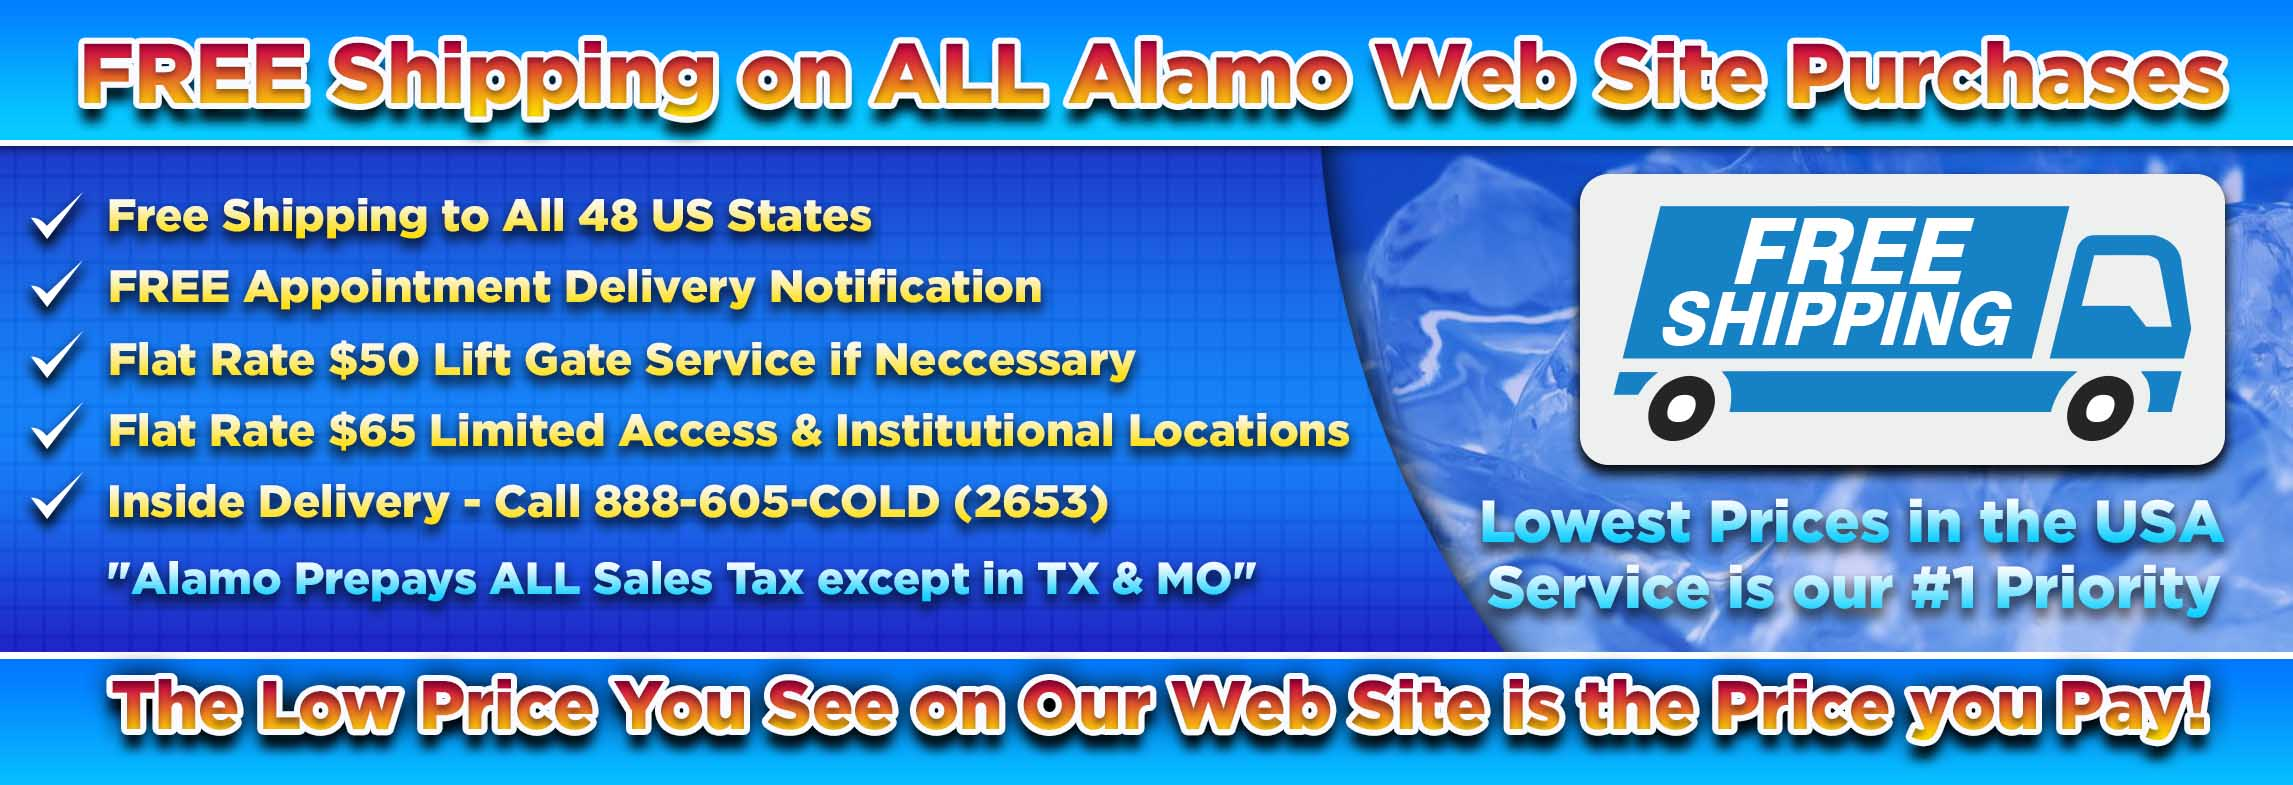 Free Shipping on ALL Alamo Web Site Purchases